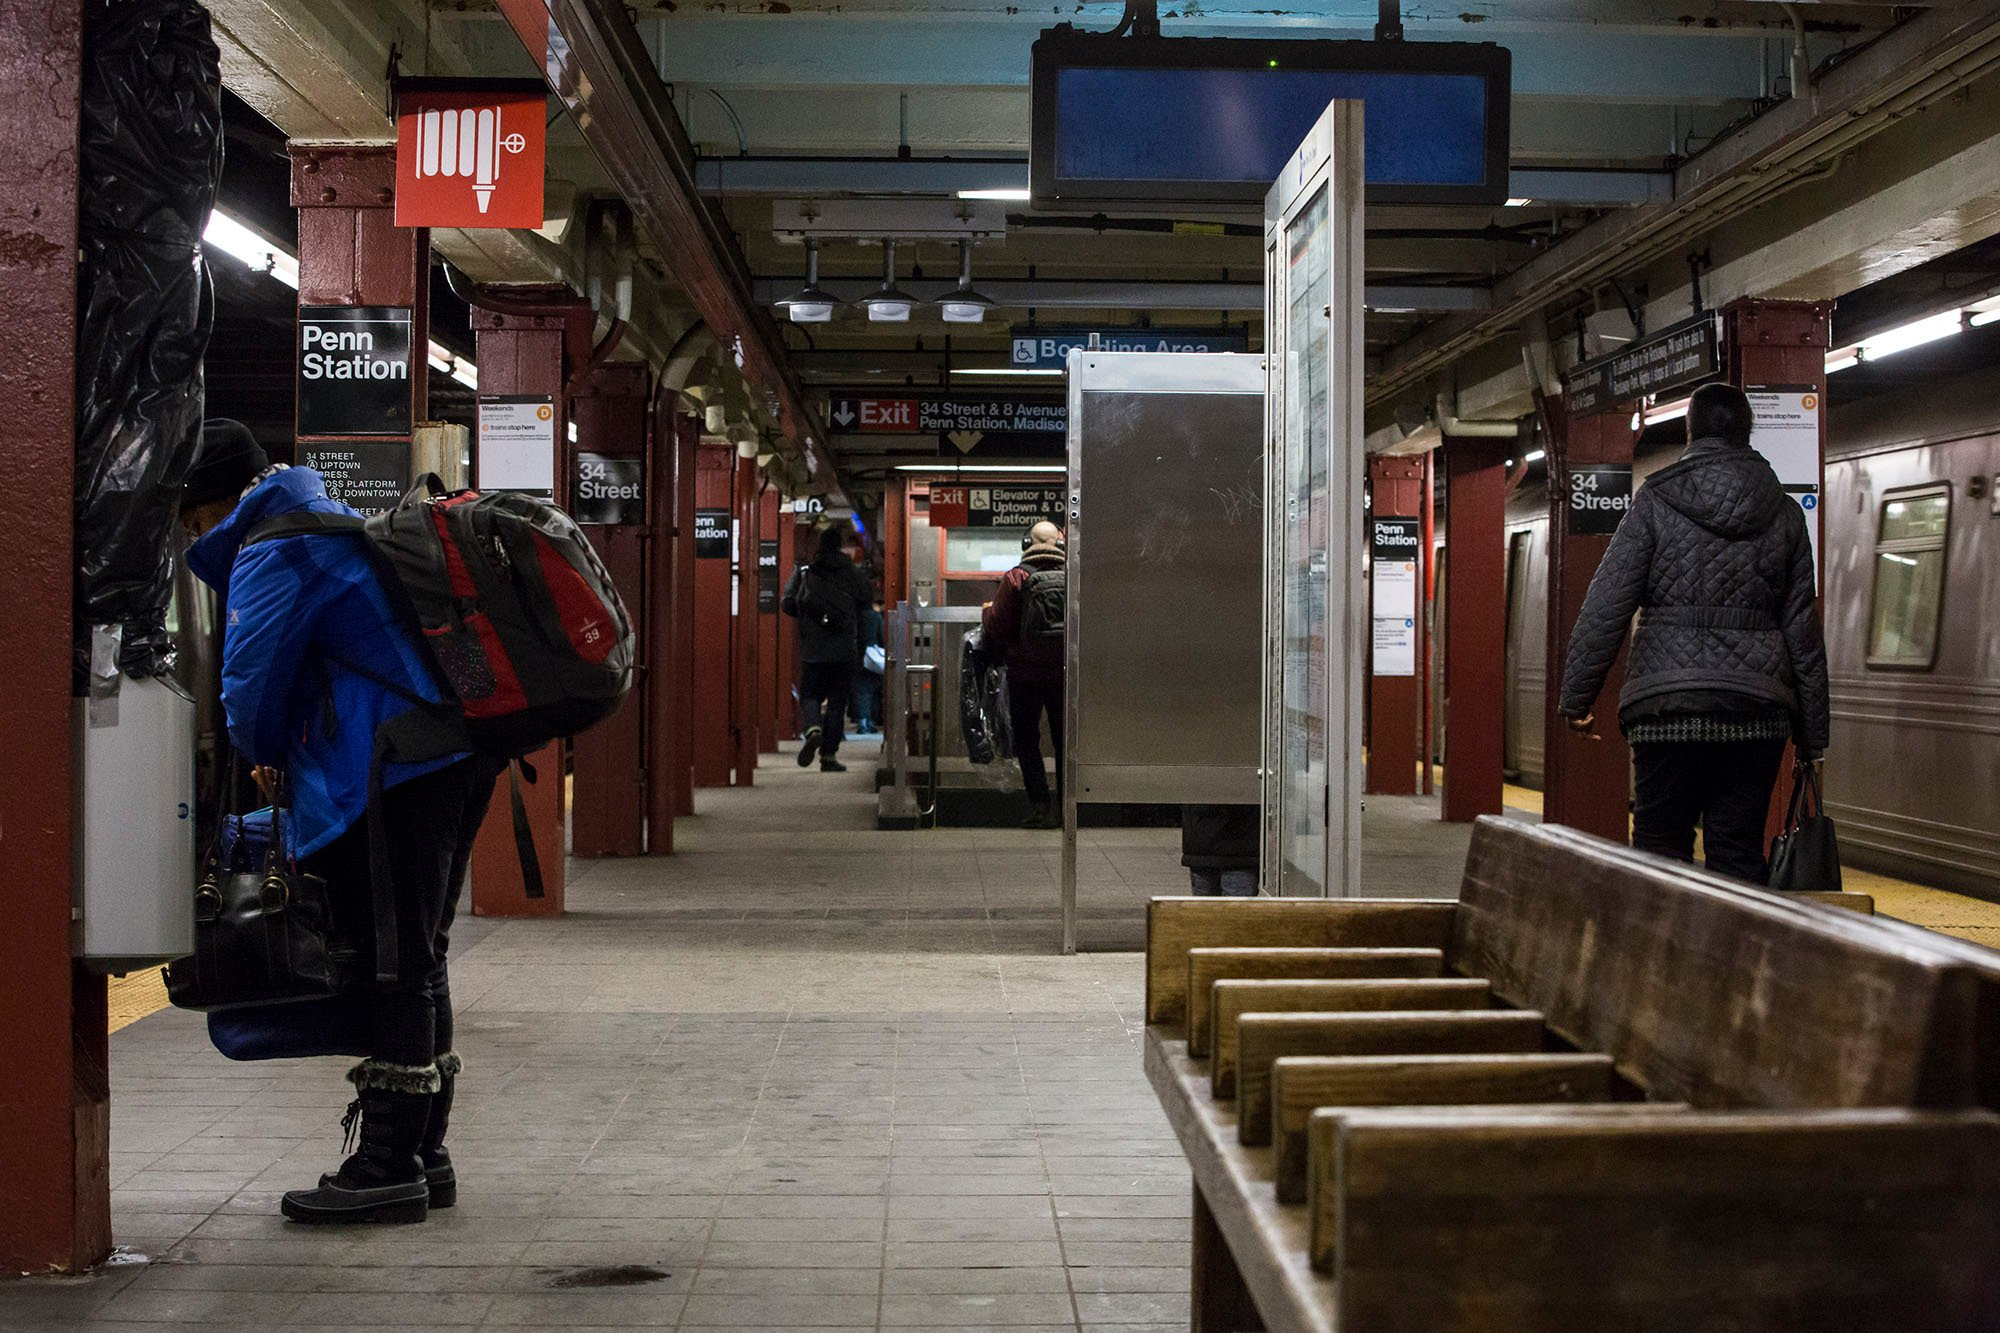 De Blasio representatives spike plan to renovate subway stations